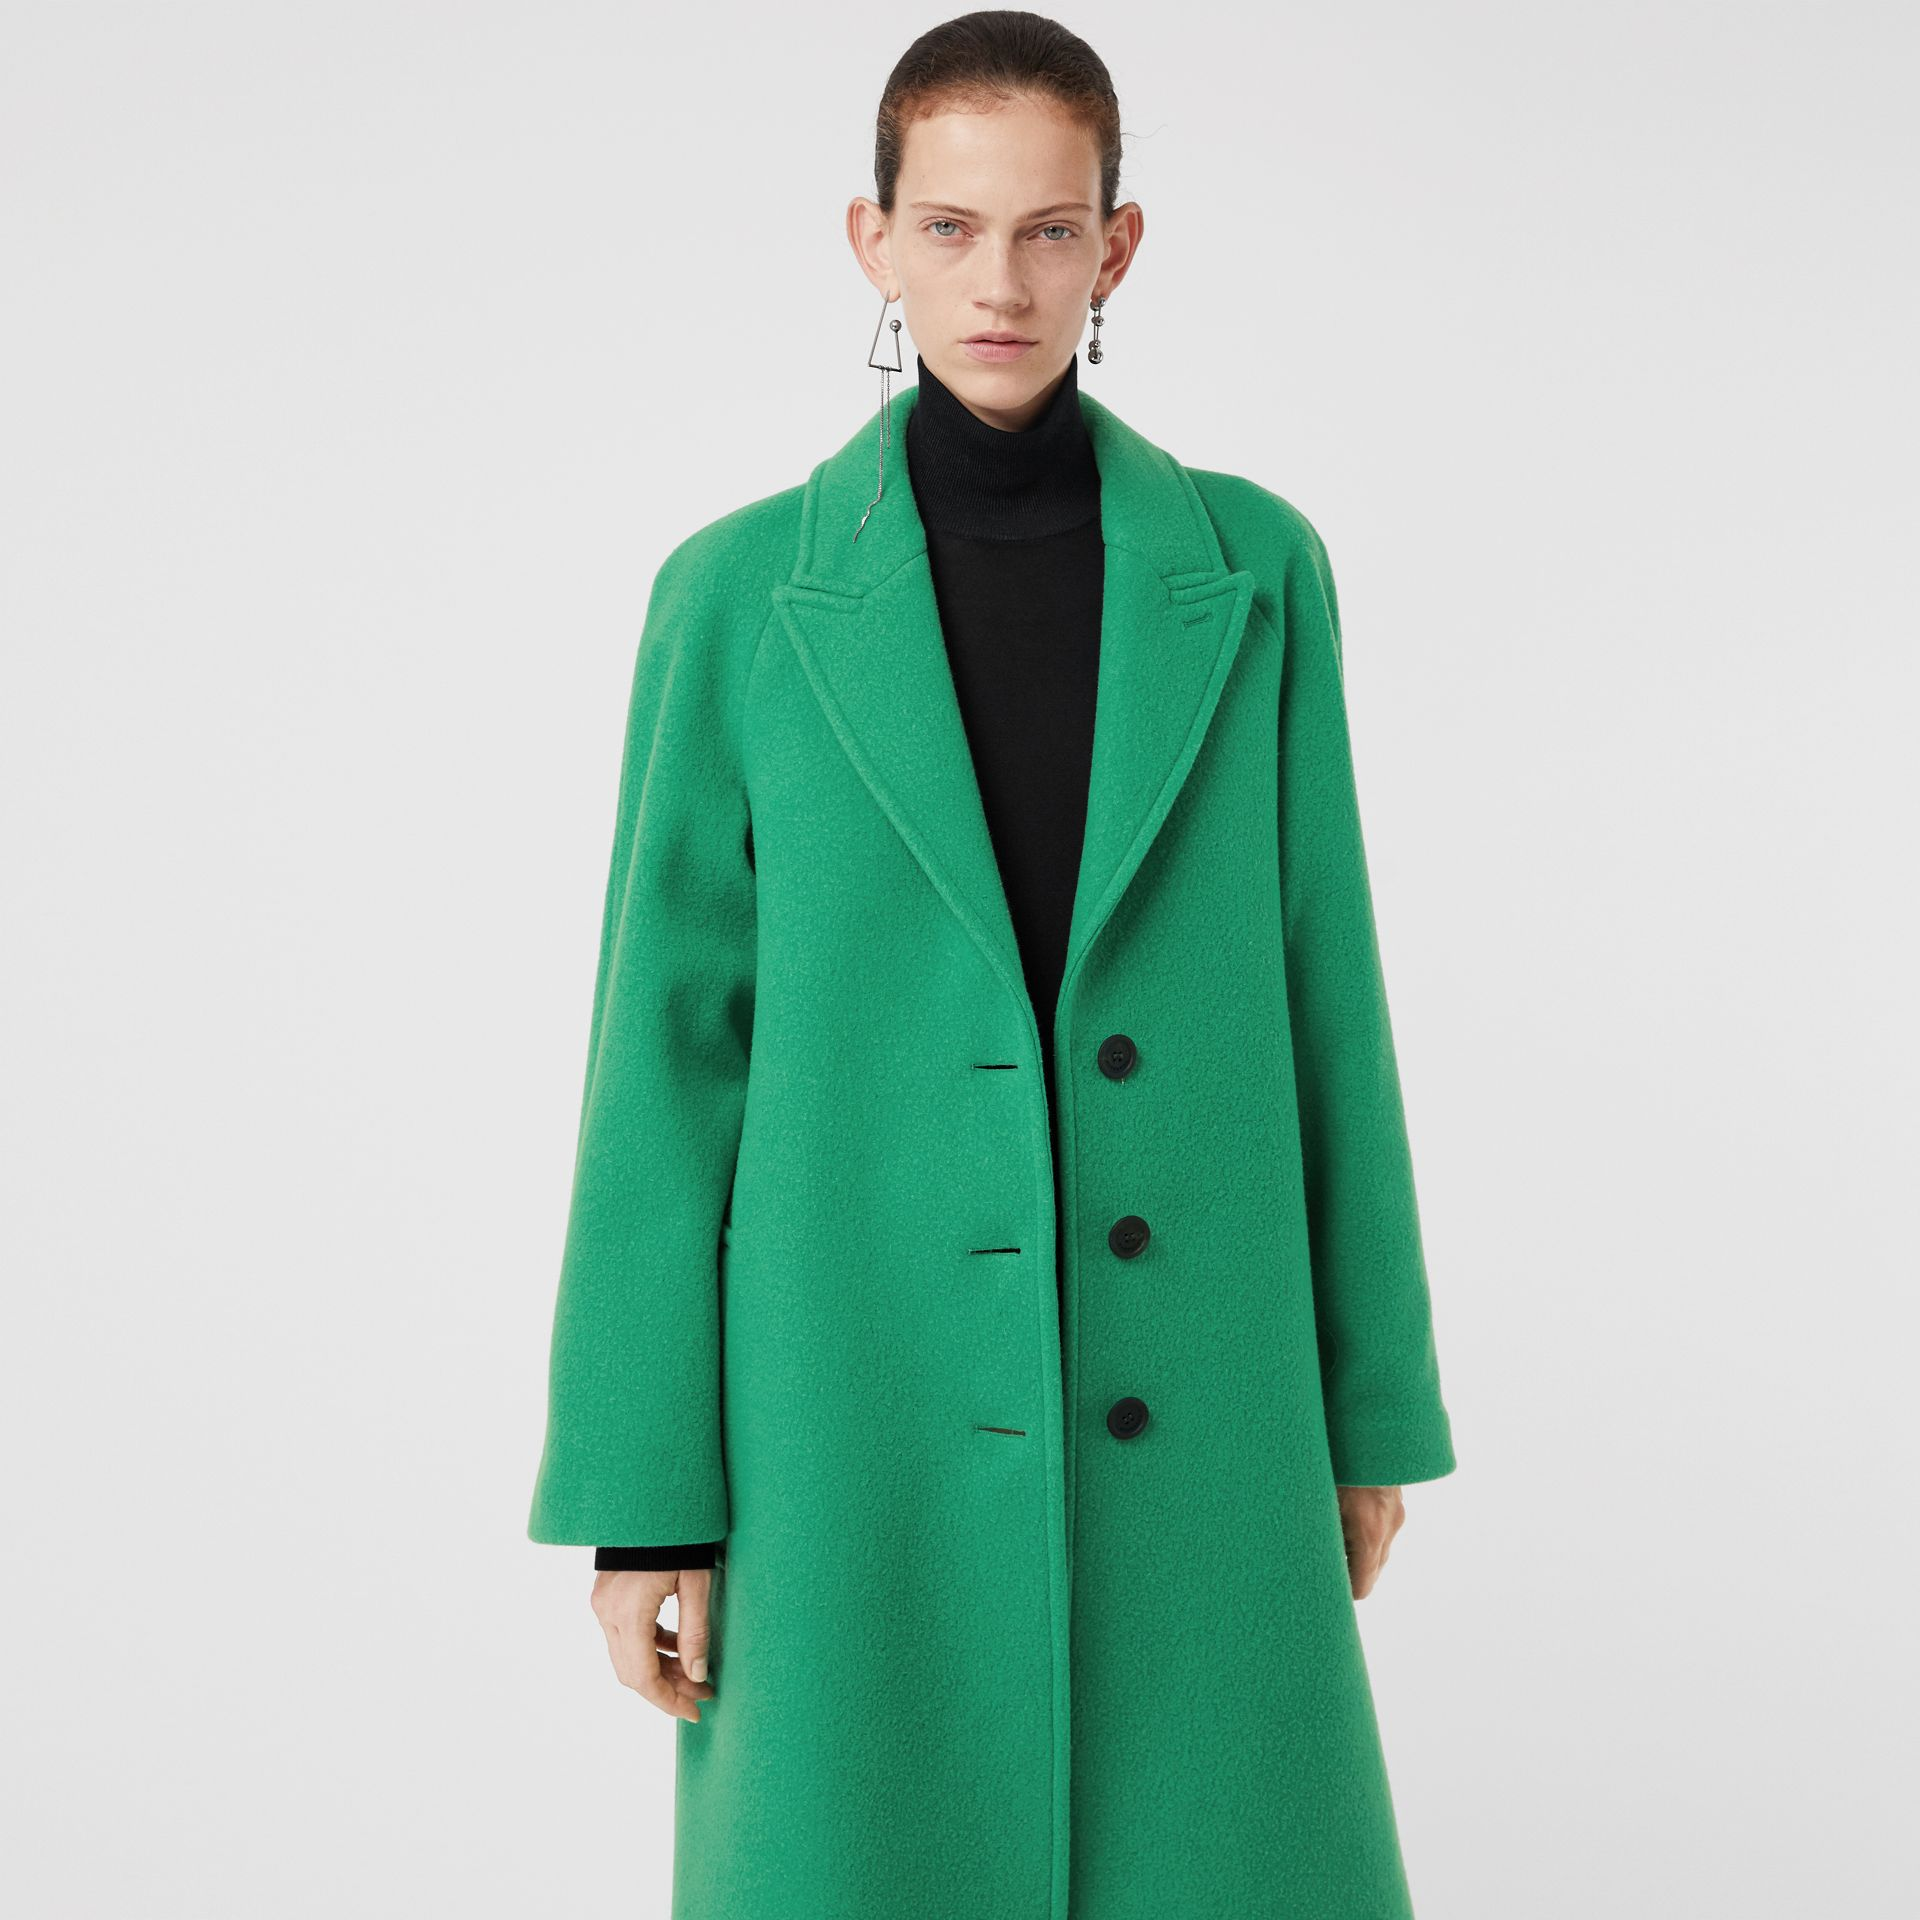 Wool Blend Tailored Coat in Bright Green - Women | Burberry - gallery image 4